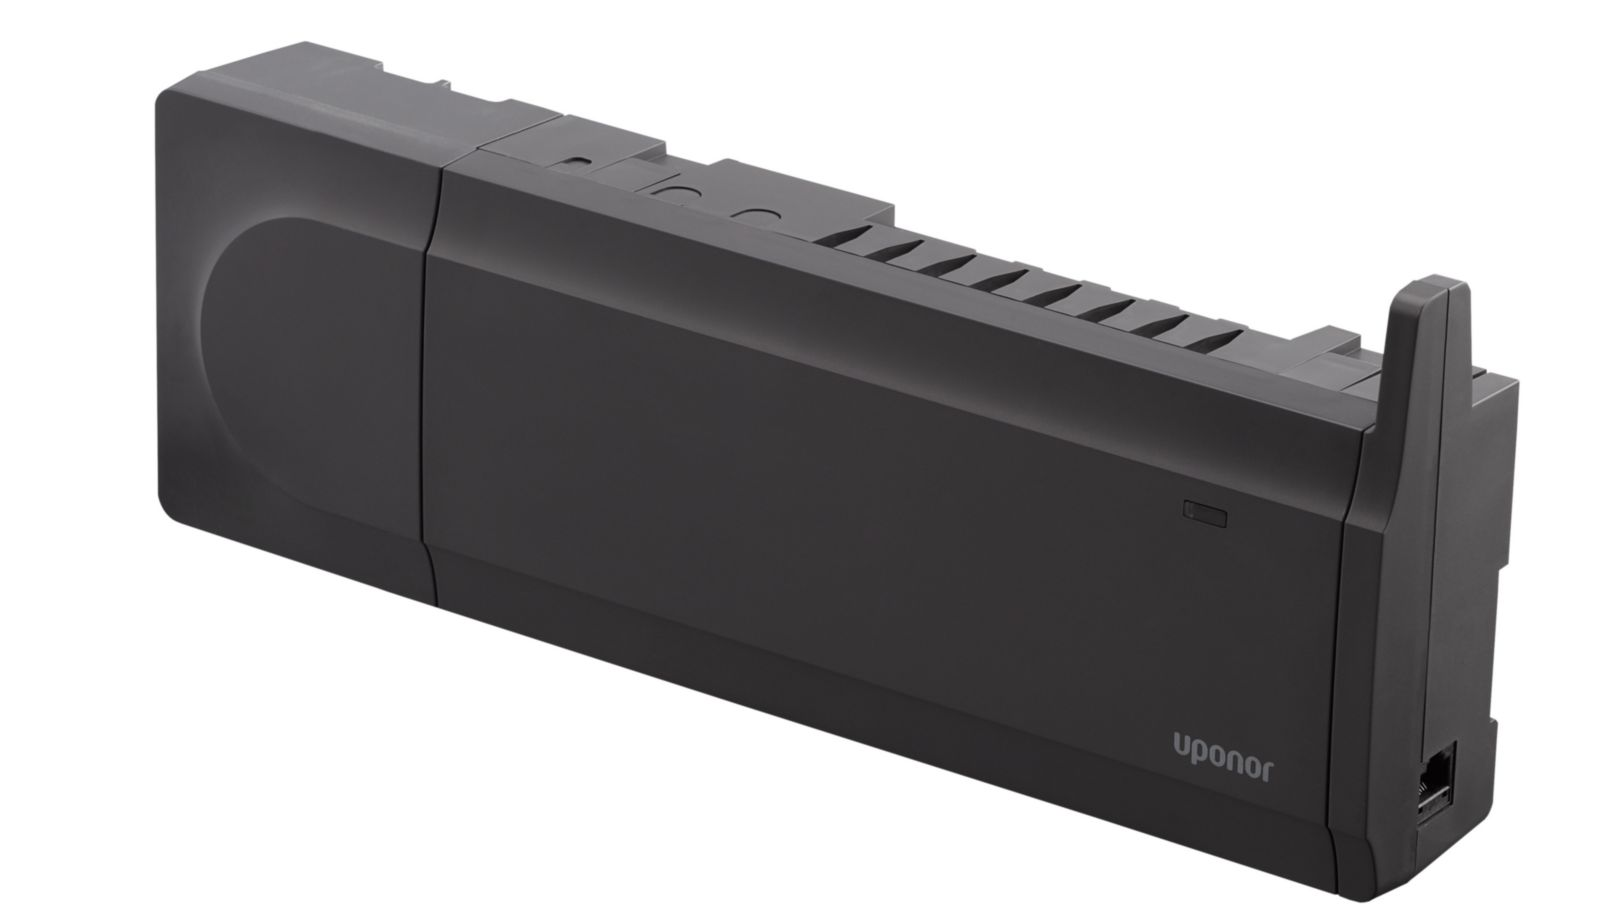 Jaukurai Uponor Smatrix Wave Plus X-165